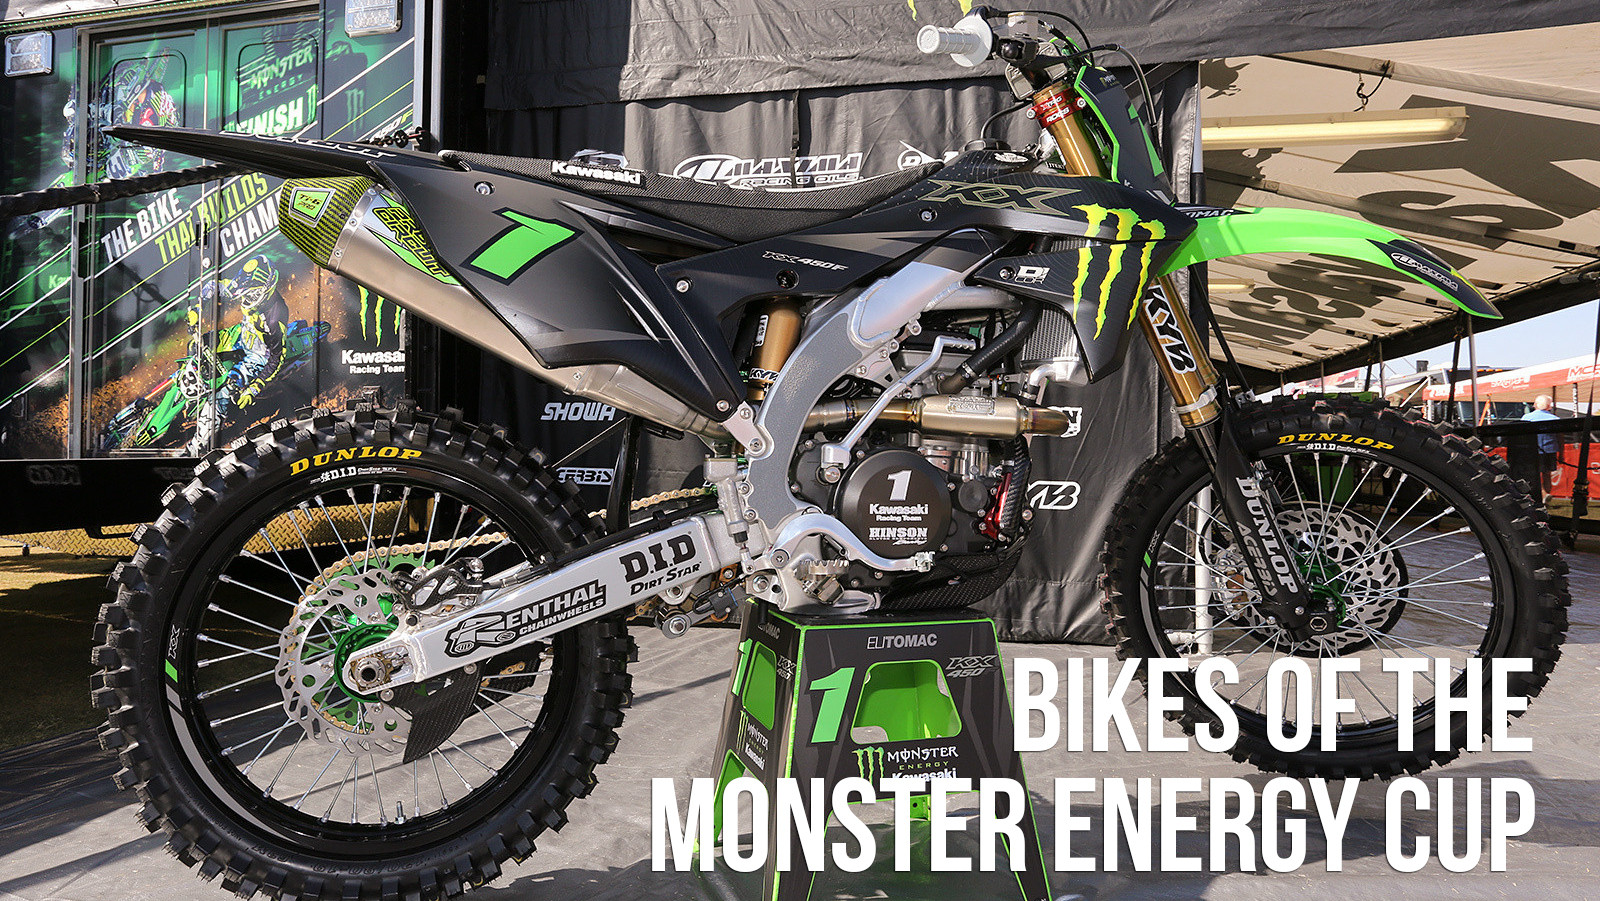 The Bikes of the 2017 Monster Energy Cup